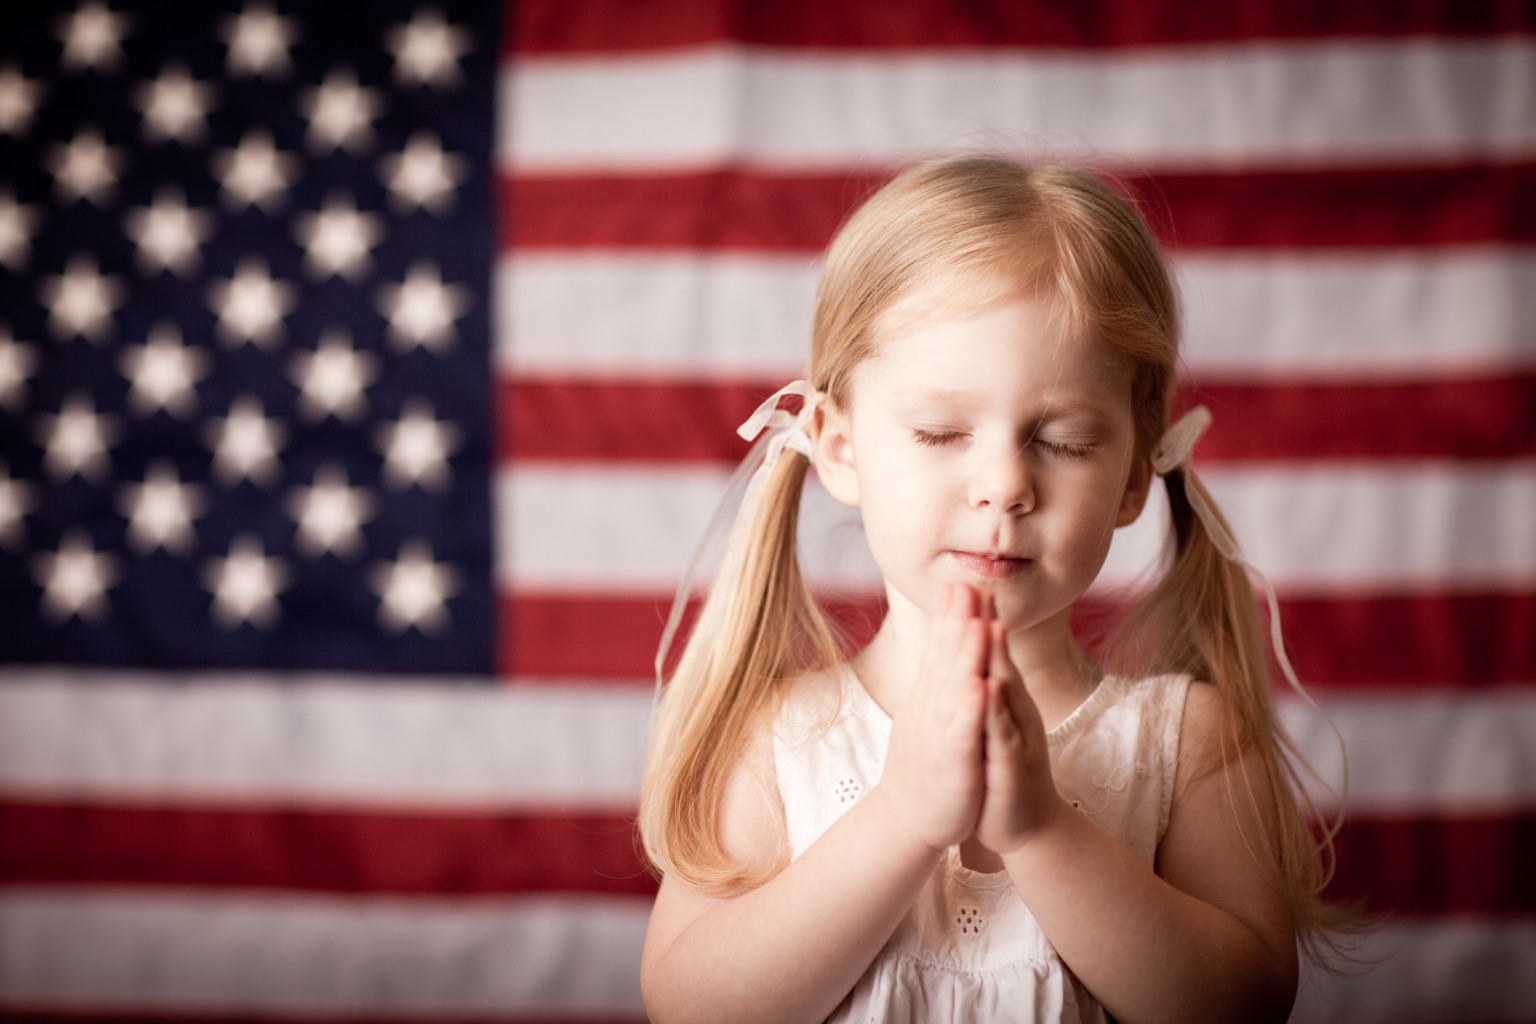 o-KENTUCKY-SCHOOL-PRAYER-PETITION-facebook